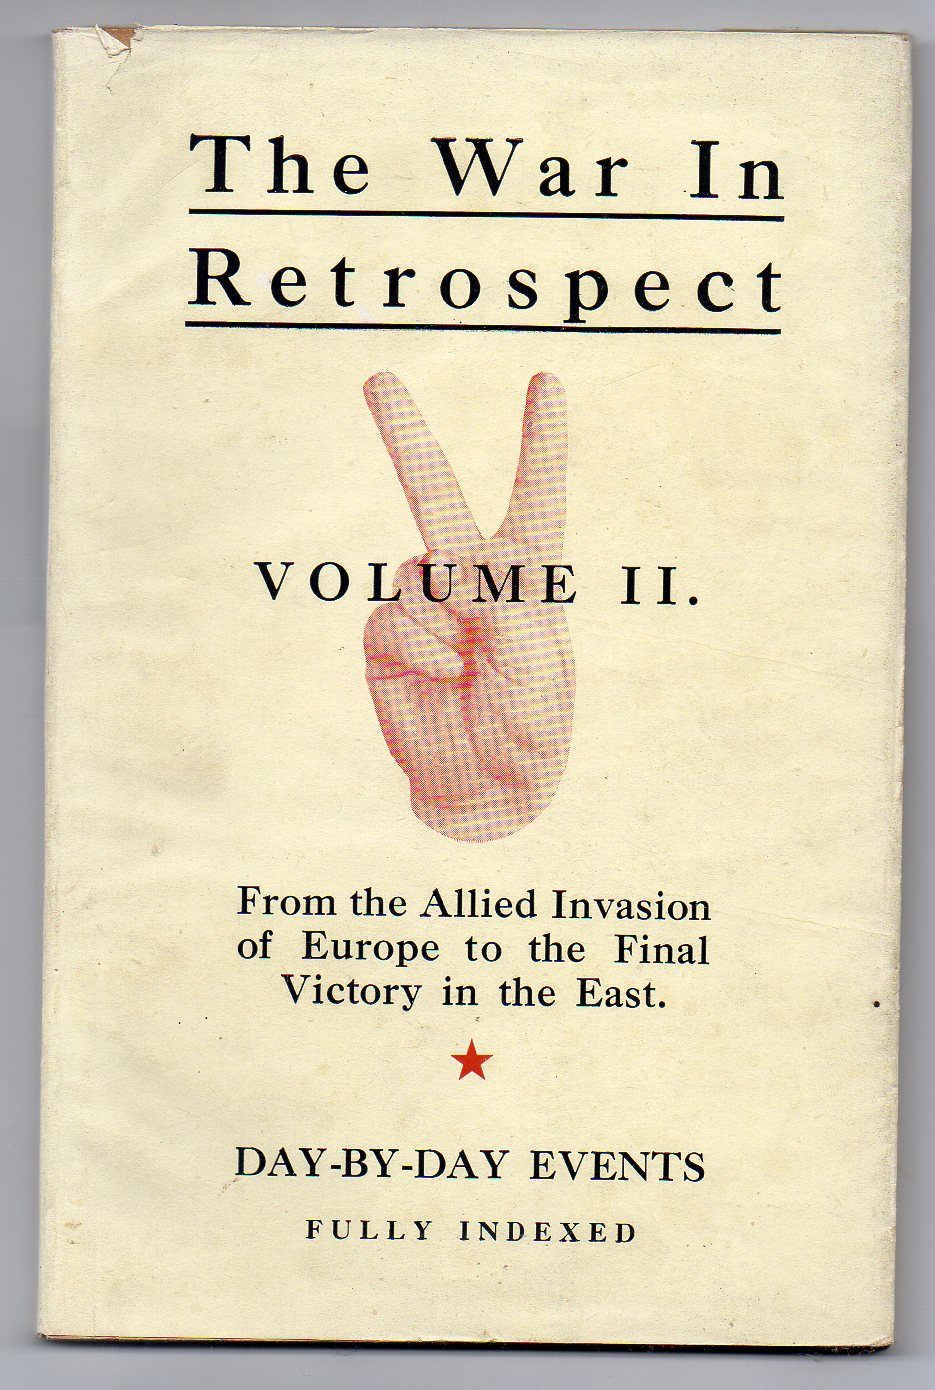 Image for The War in Retrospect - Volume II. A Day-to-day Record of World War II. from the Allied Invasion of Europe to the Conclusion of the War with Japan